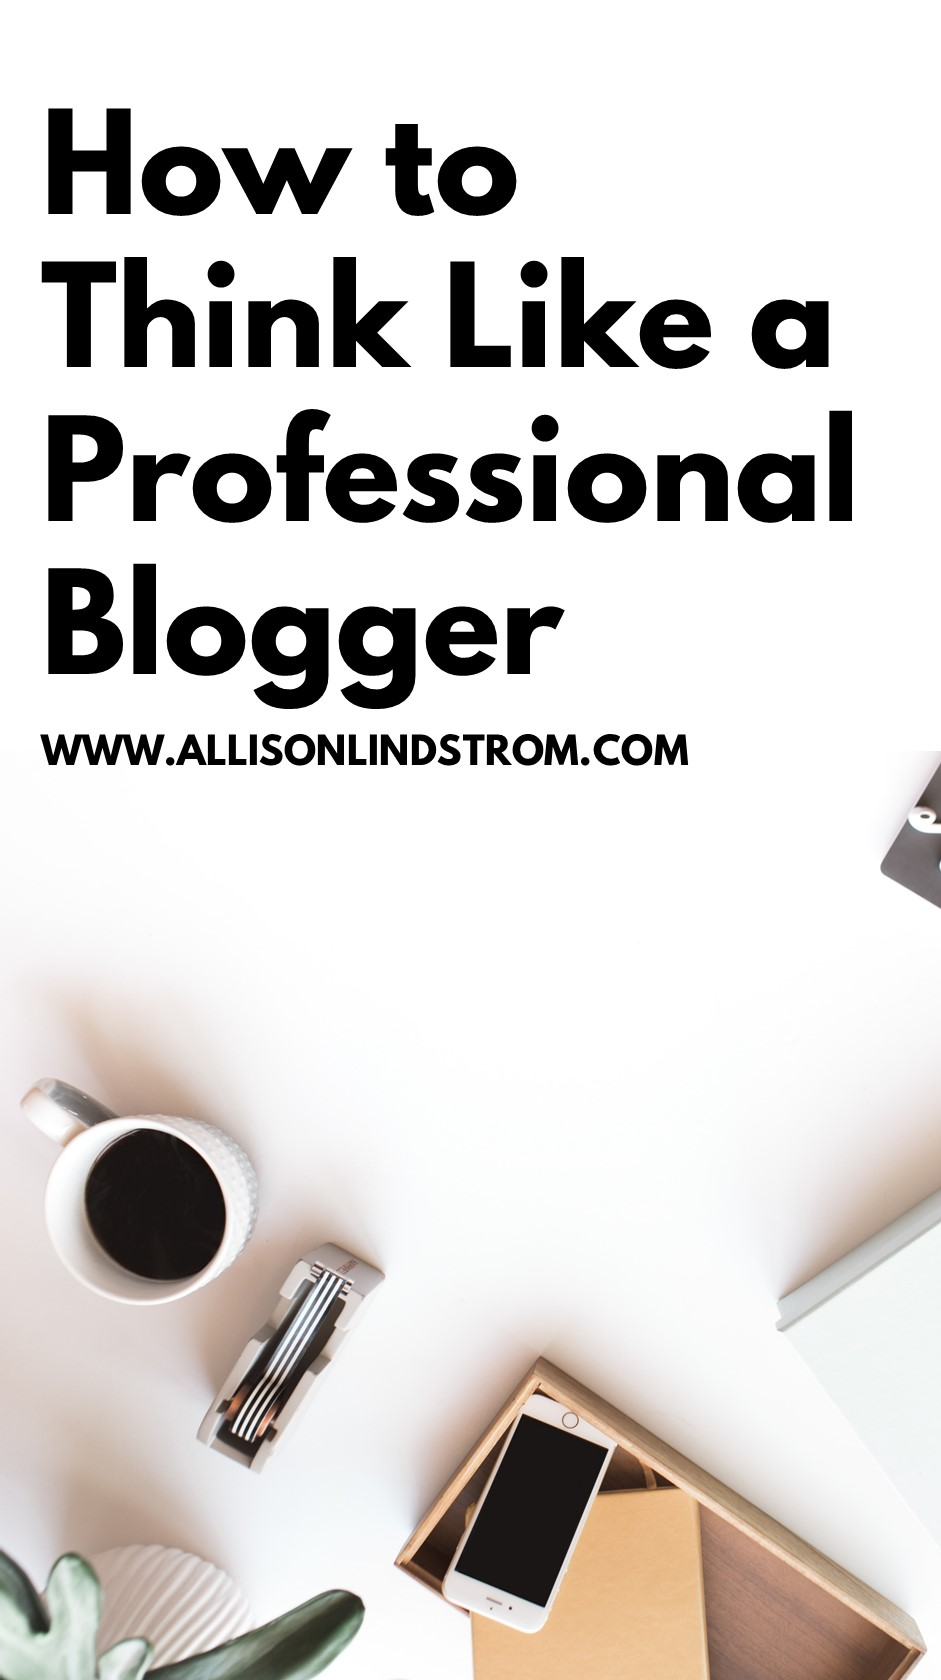 How to Think Like a Professional Blogger-- One of the biggest challenges I see new bloggers run into is that they have a hard time figuring out how to make pro blogger decisions and run their blog for business purposes. Instinctively, we just want to write and share content! But you can seamlessly combine the two worlds by 1) helping people AND 2) supporting yourself financially.